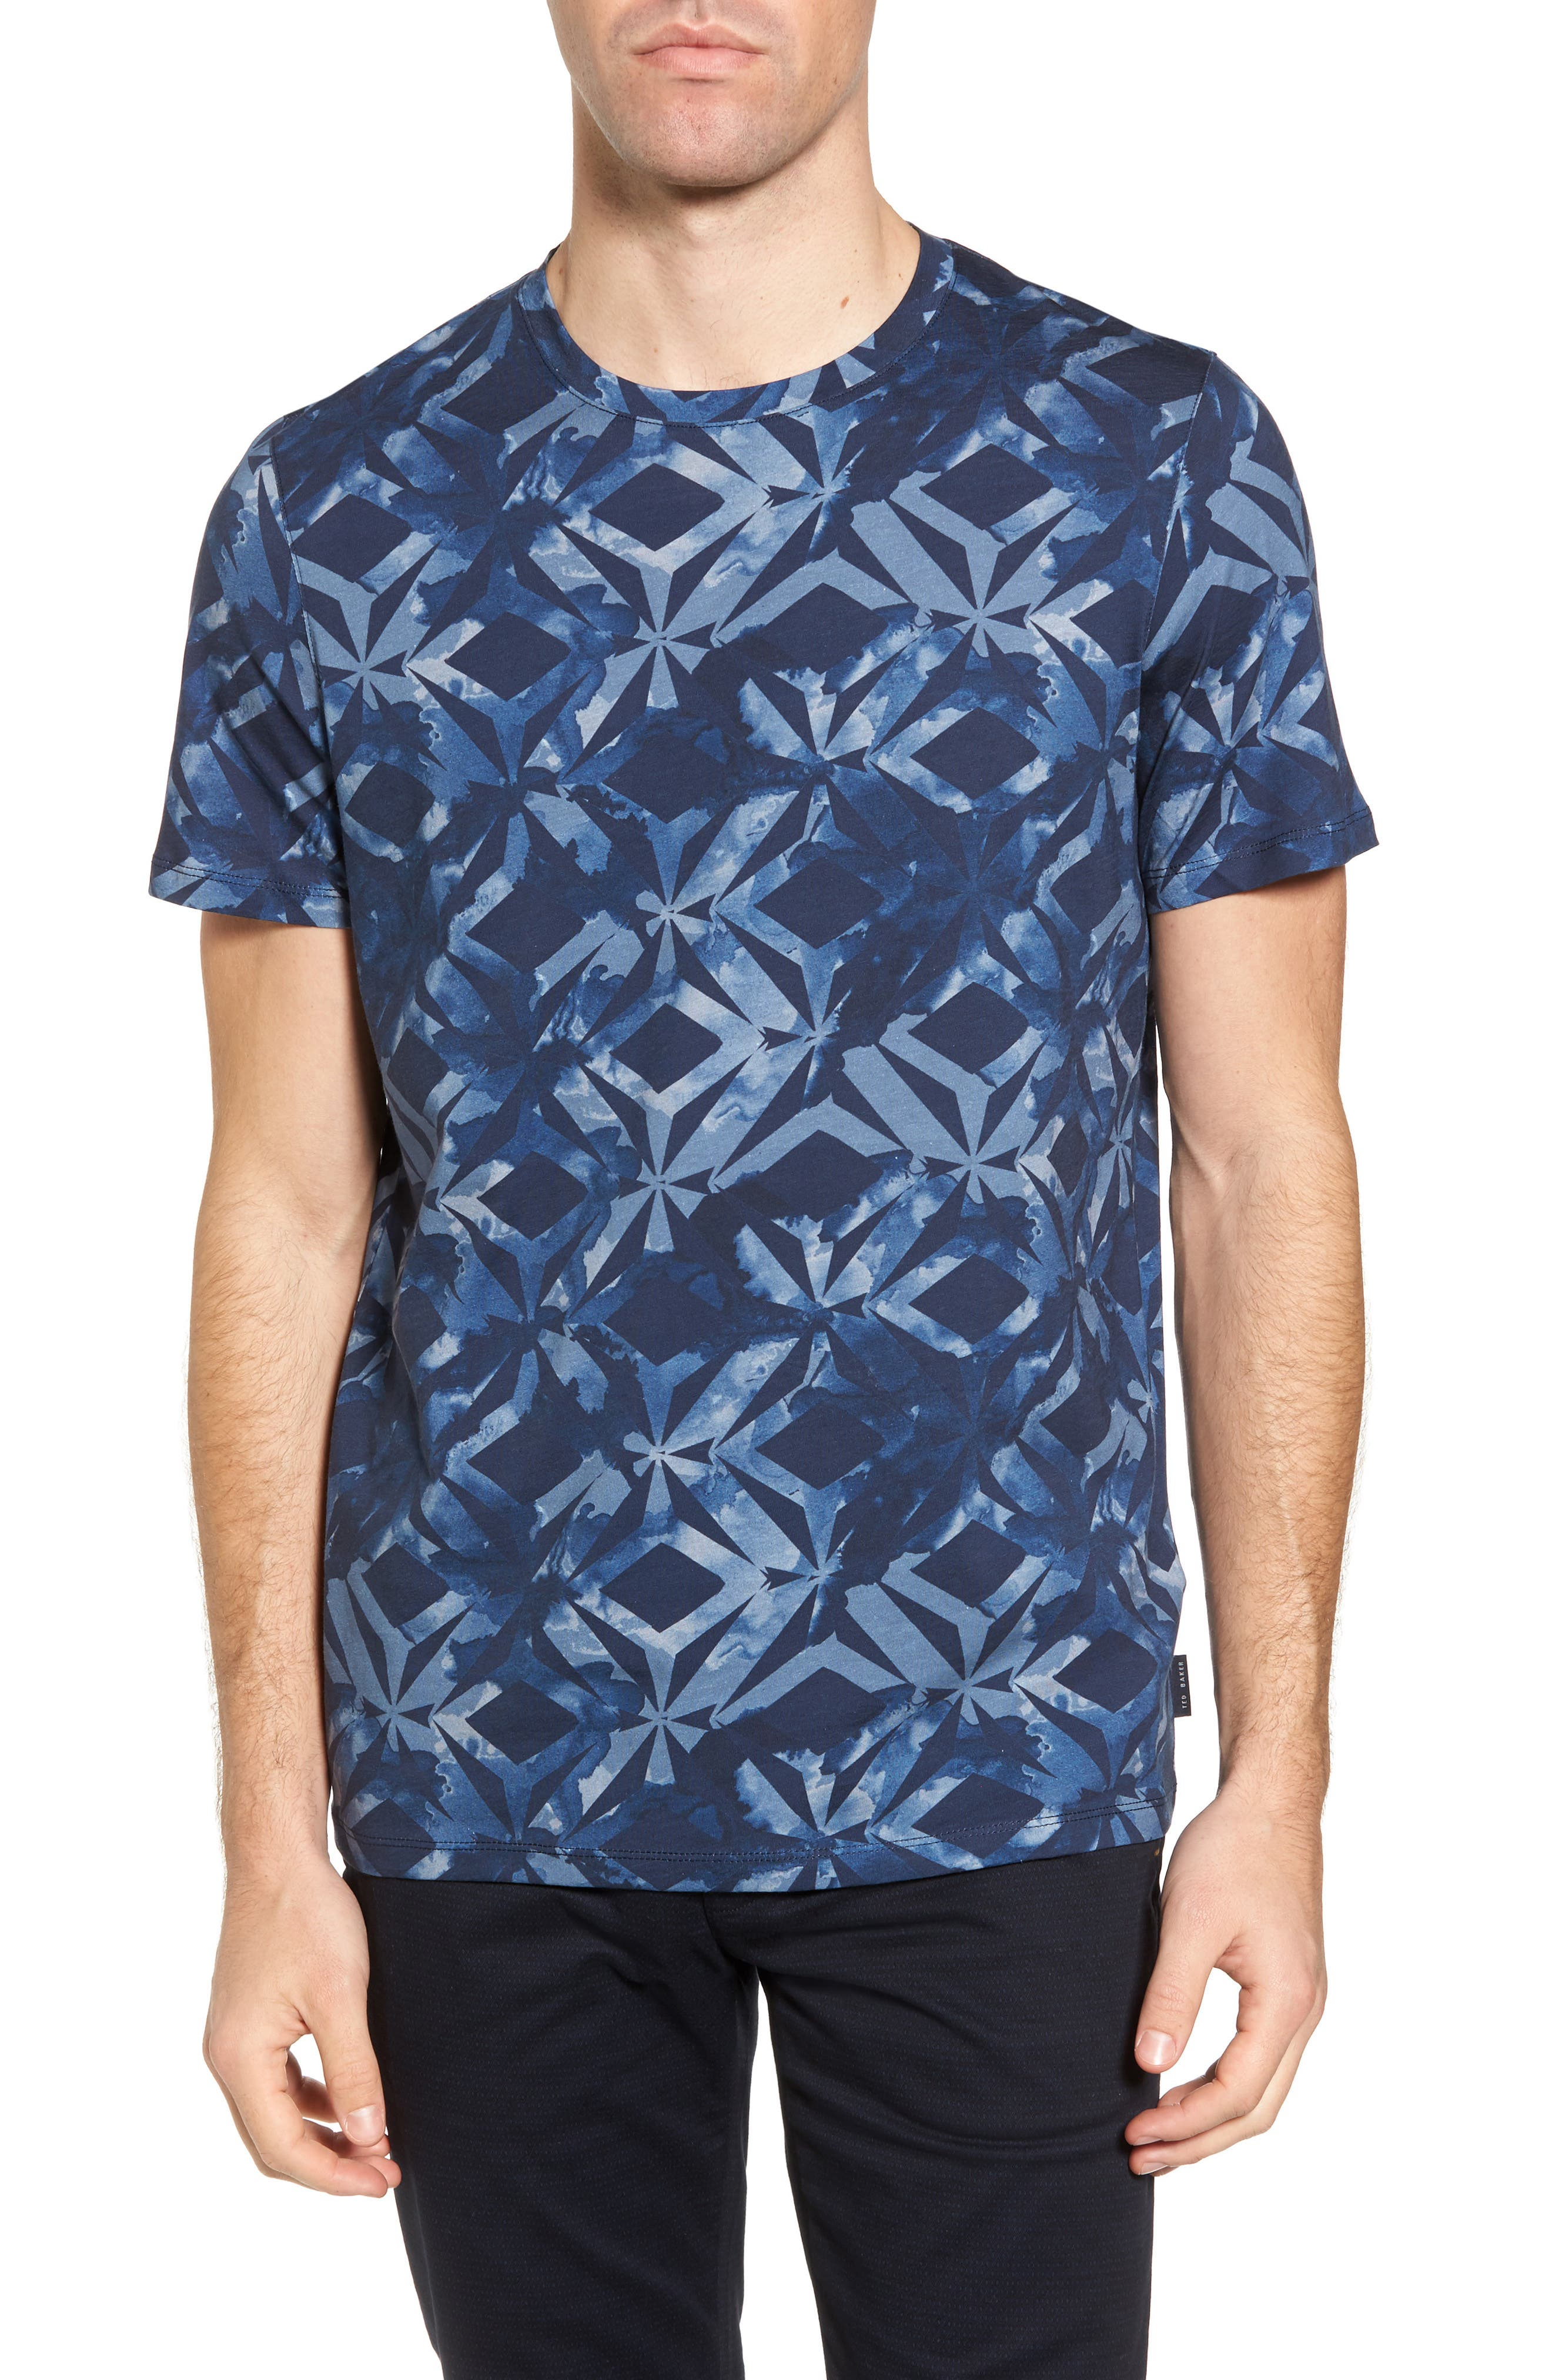 Woof Batik Print T-Shirt,                         Main,                         color, Dark Blue